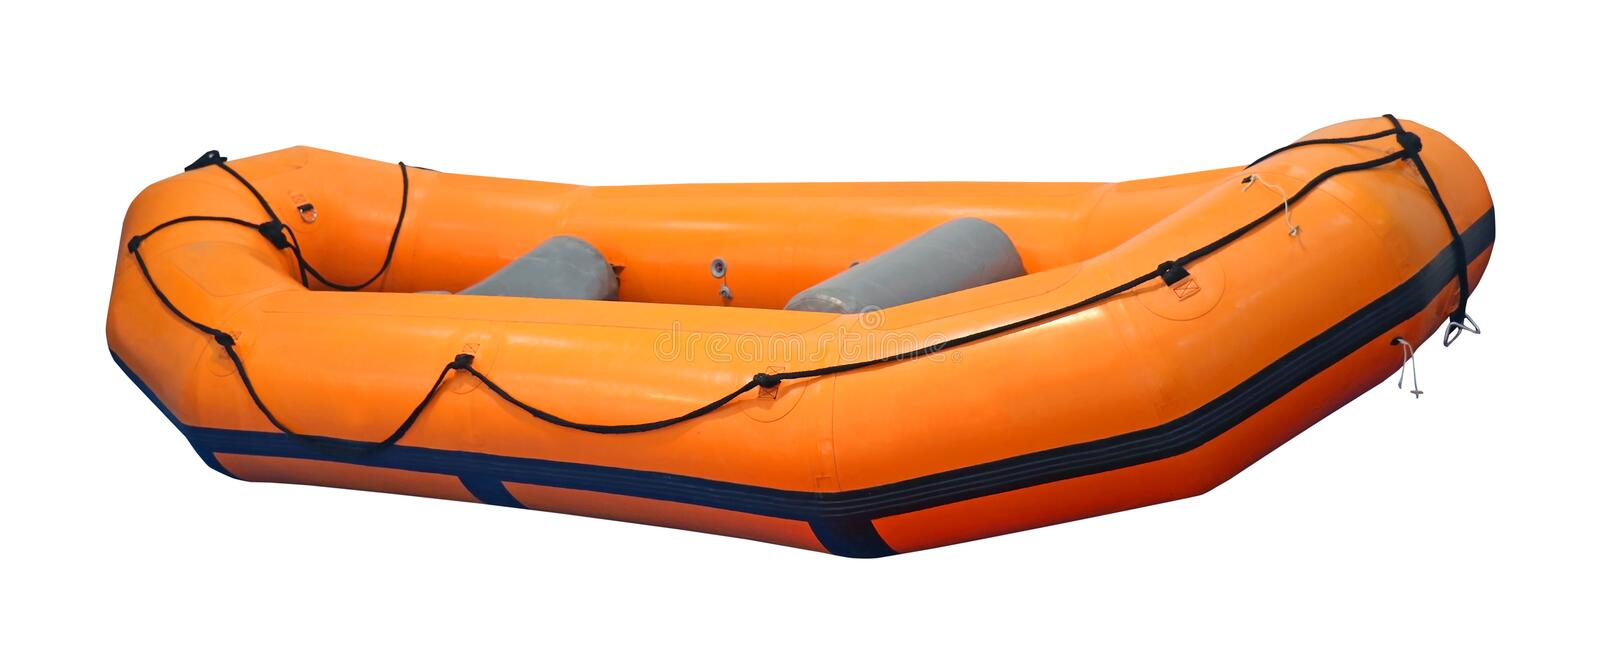 Inflatable rubber boat. Isolated with clipping path included royalty free stock photography